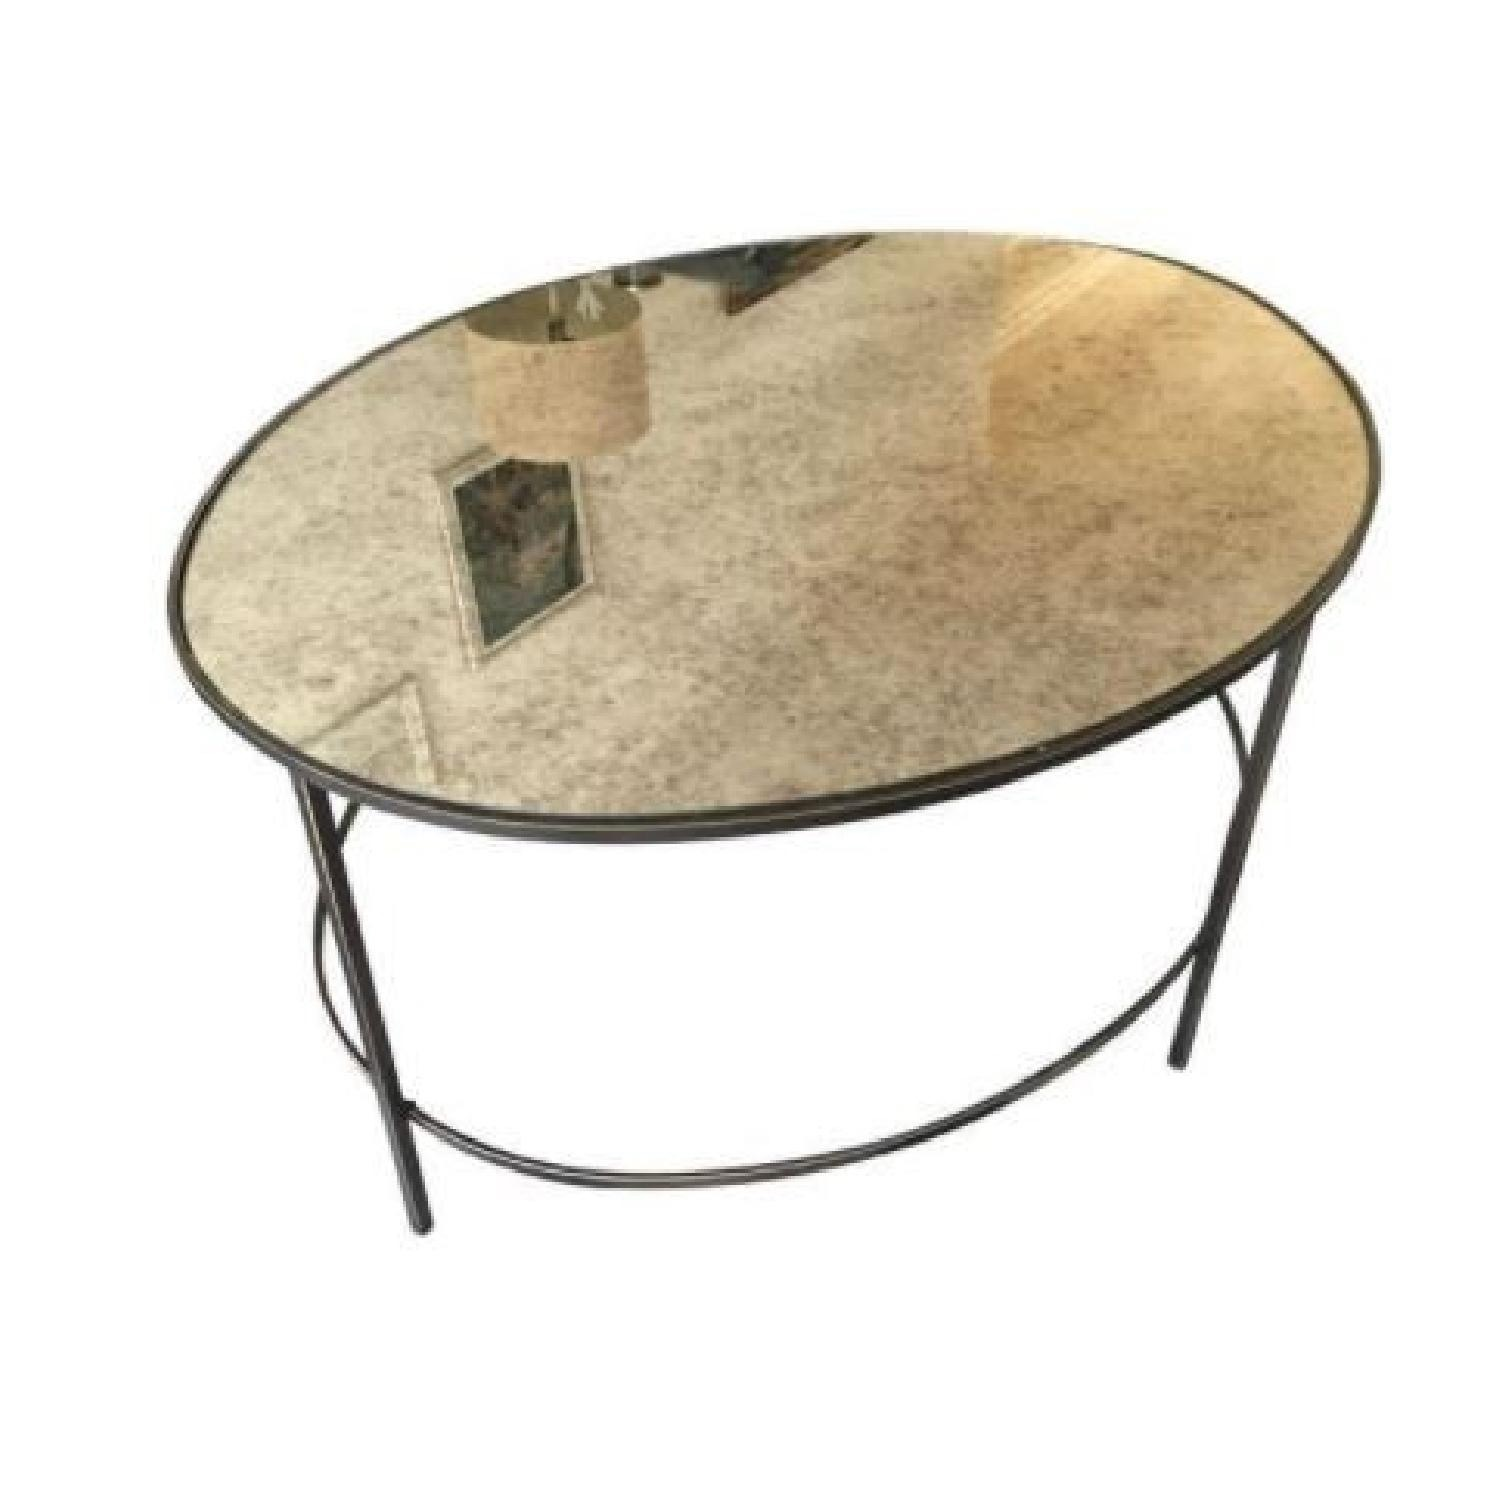 West Elm Foxed Mirrored Glass Oval Coffee Table - image-1